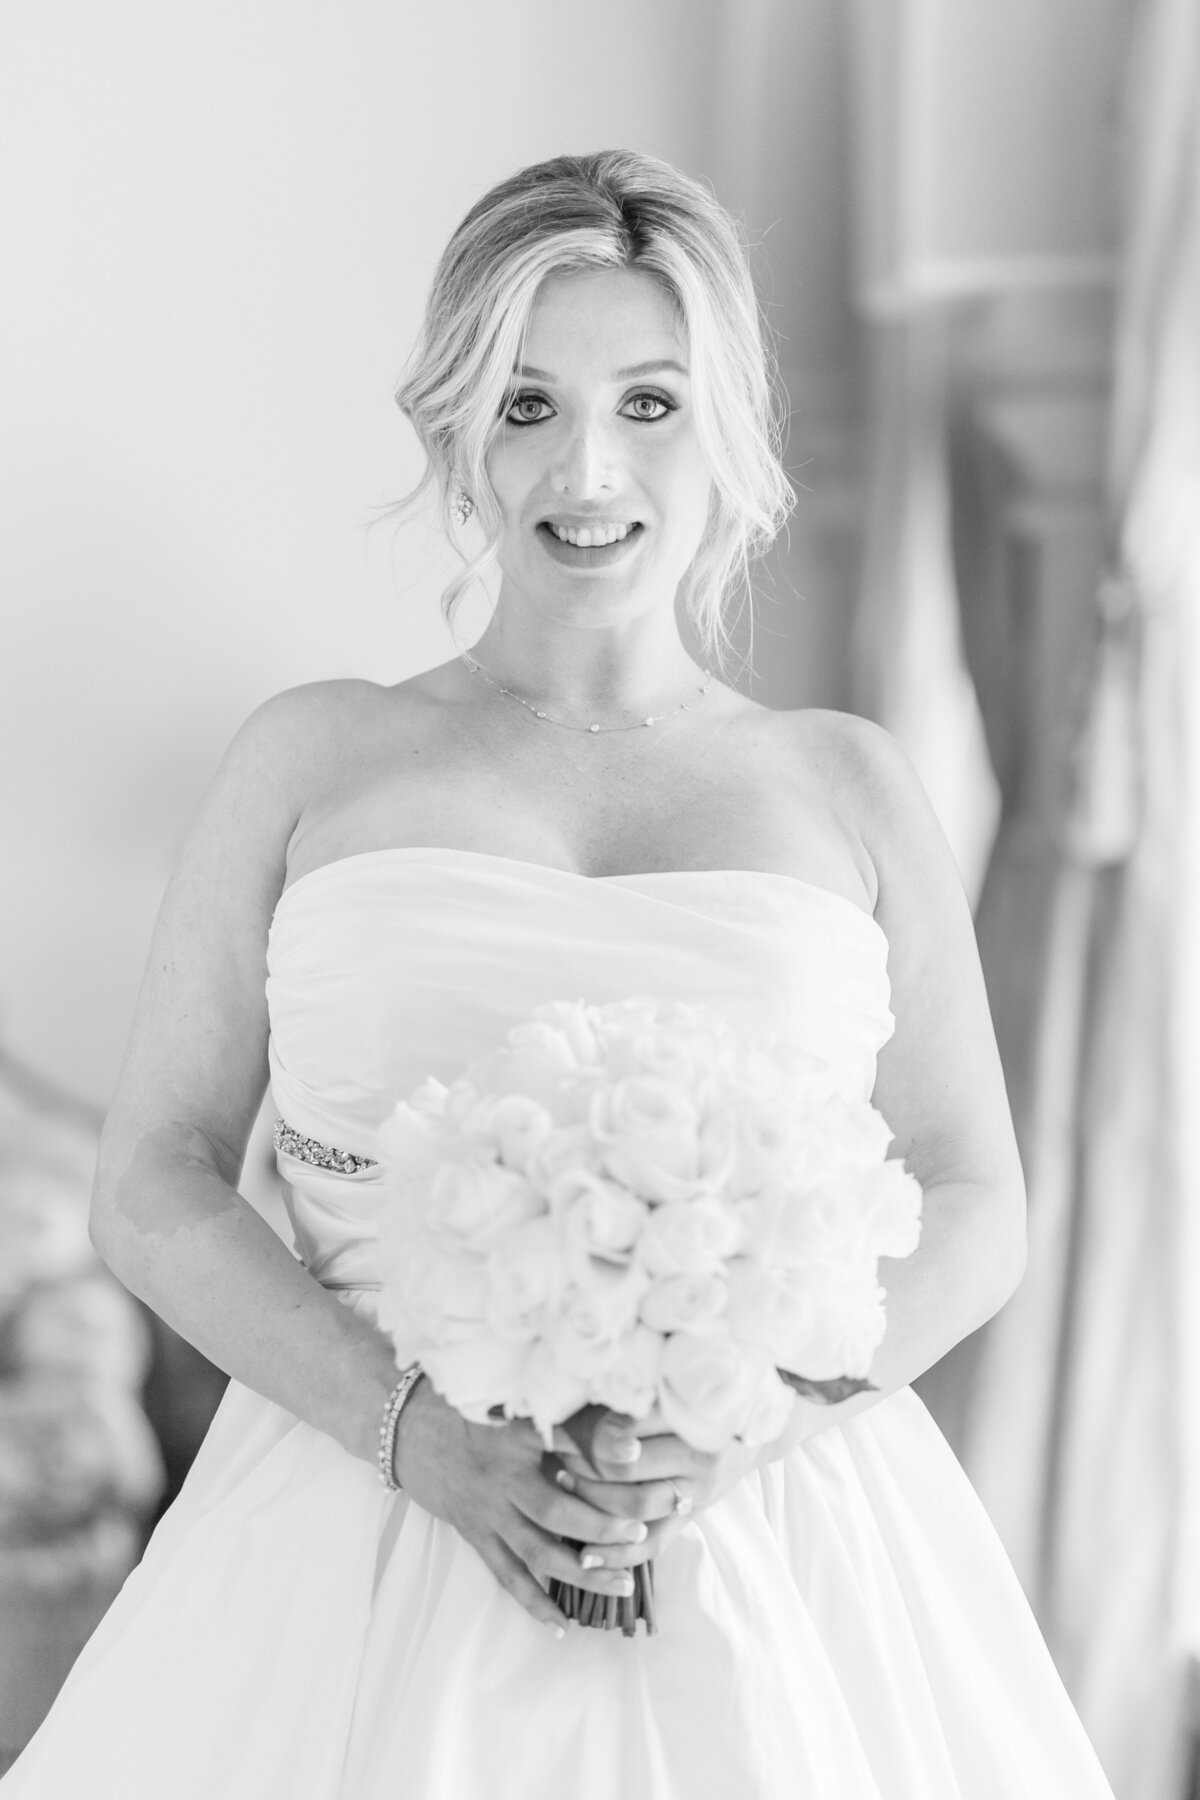 Kelli-Bee-Photography-Gallery-Malibu-Los-Angeles-Wedding-Luxury-Lifestyle-Photographer-Lauren-Ben-0017